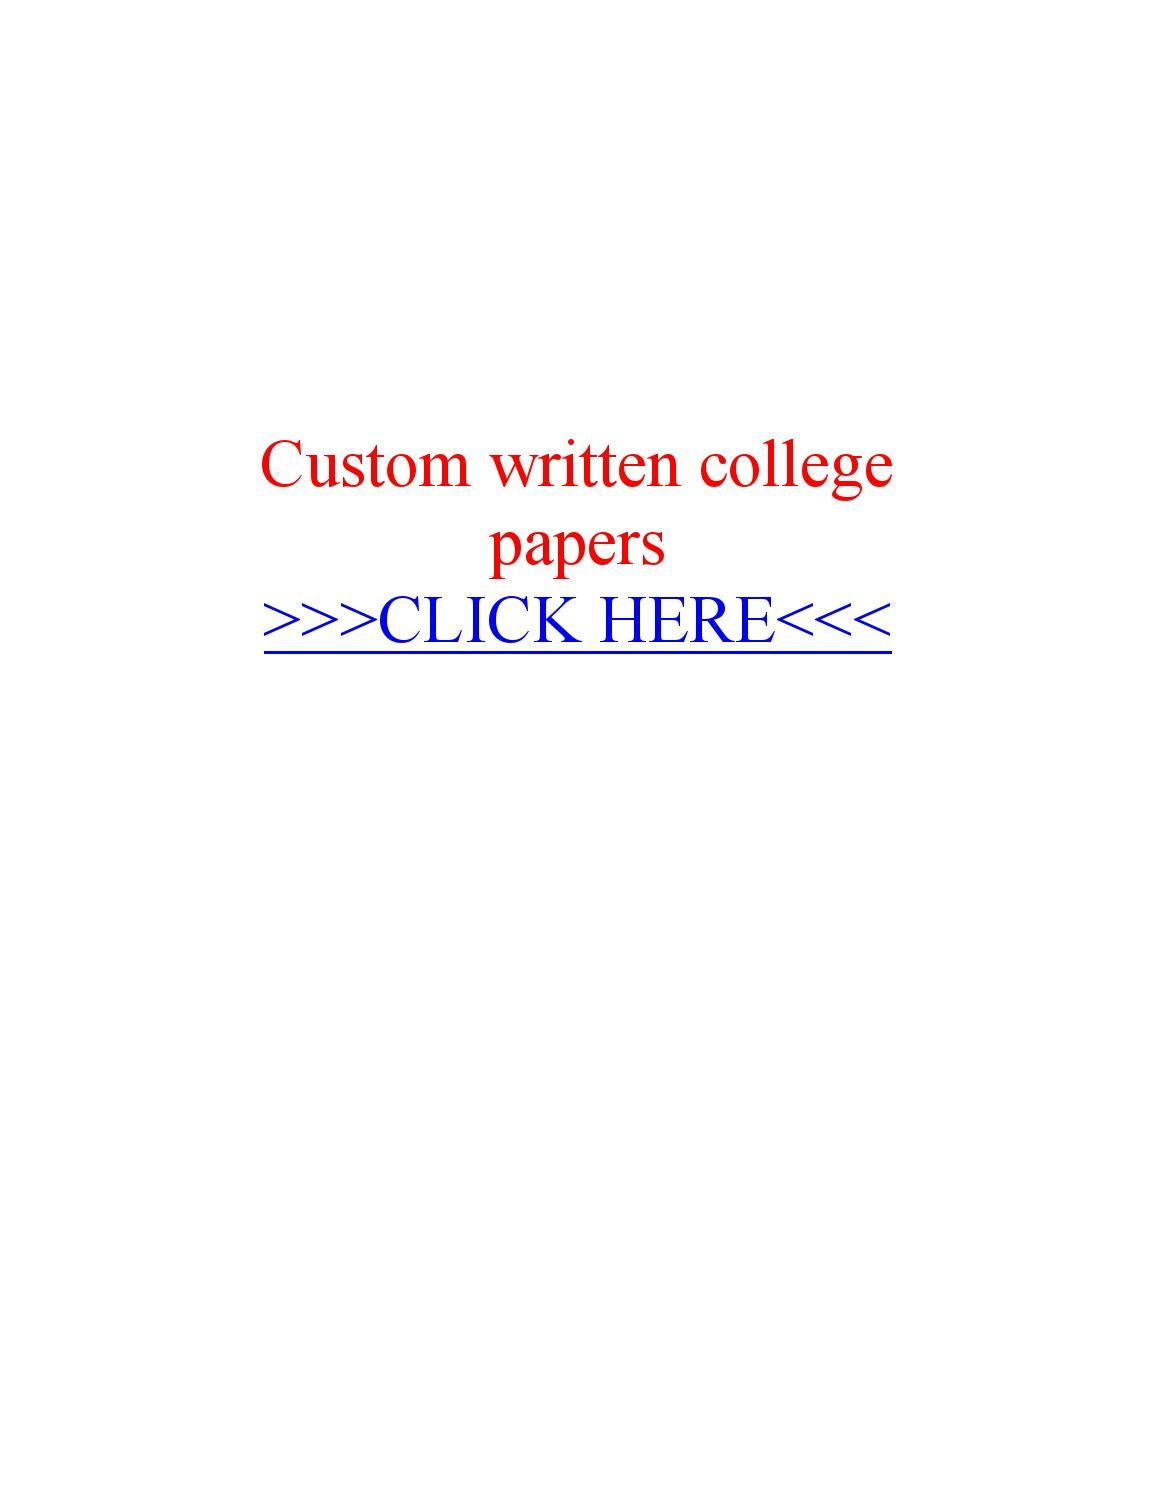 Custom collge papers